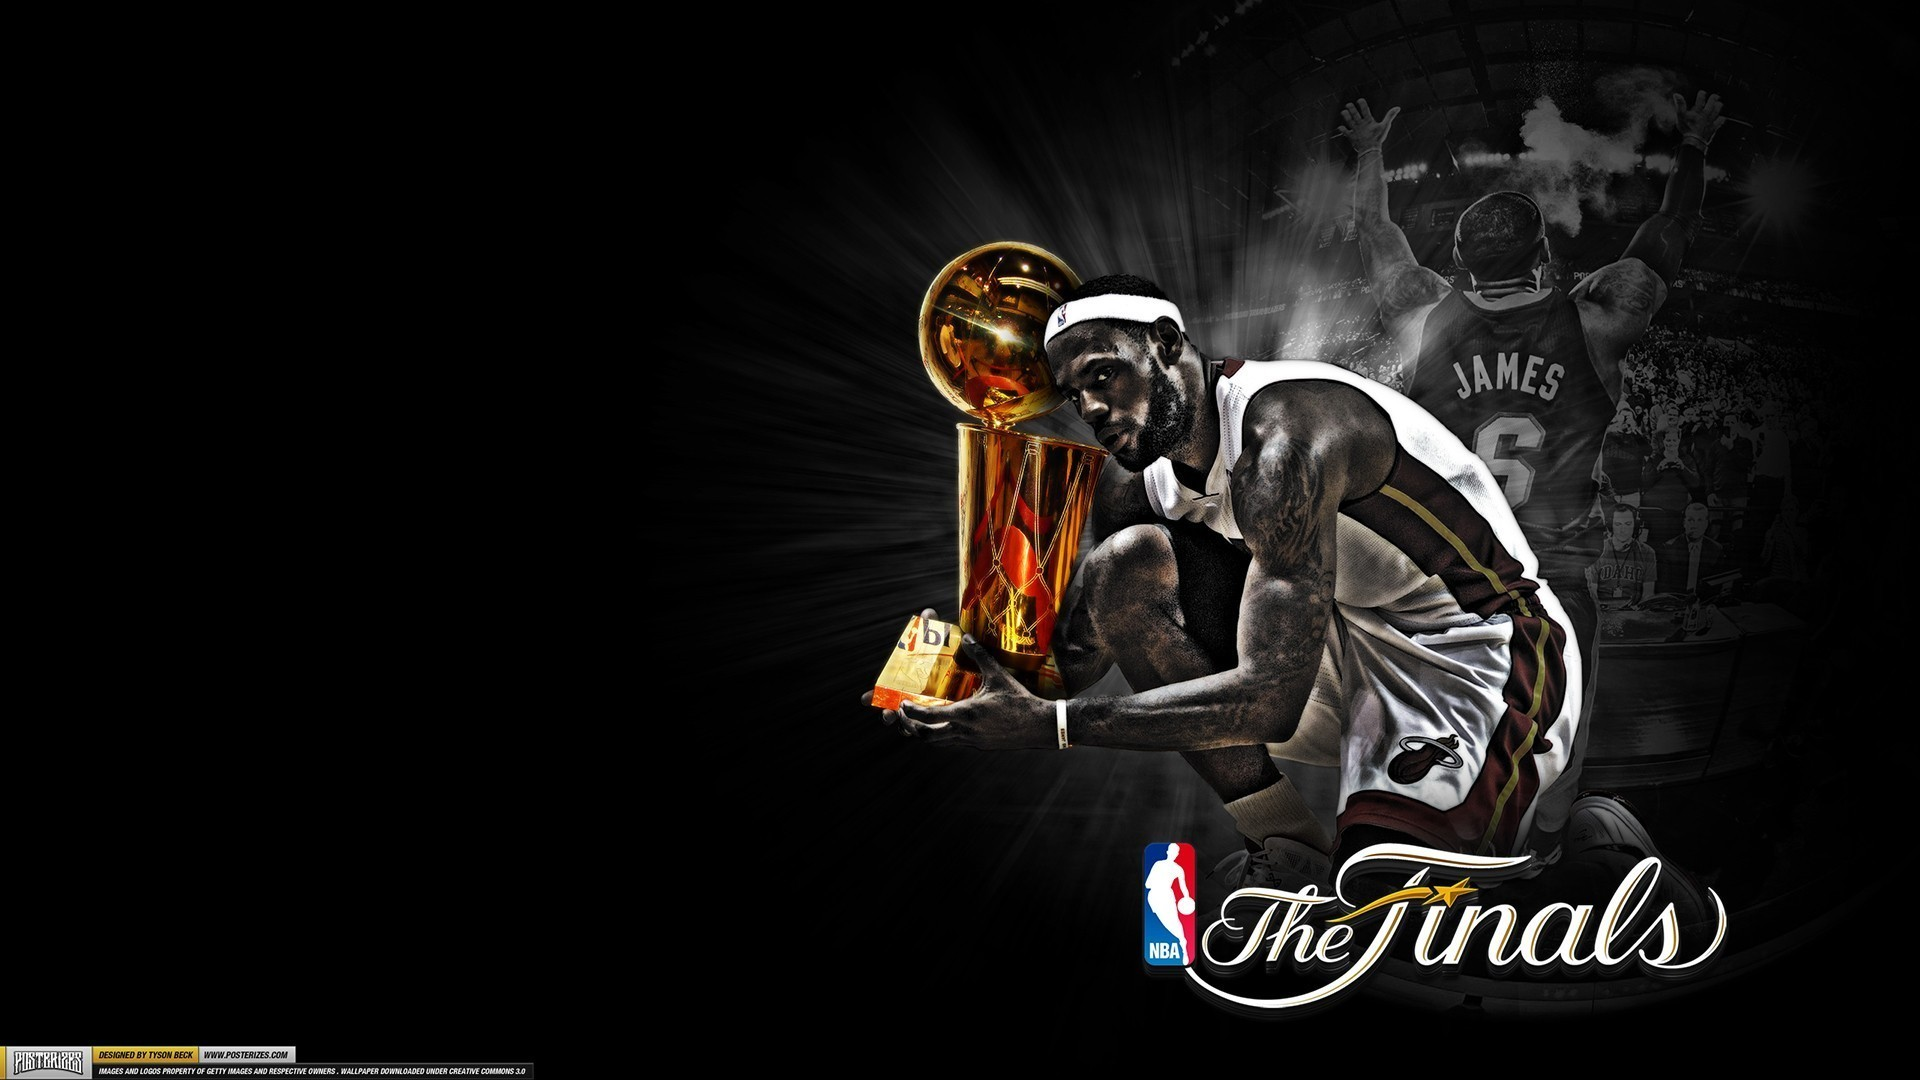 1920x1080 Lebron james miami heat nba basketball player wallpaper